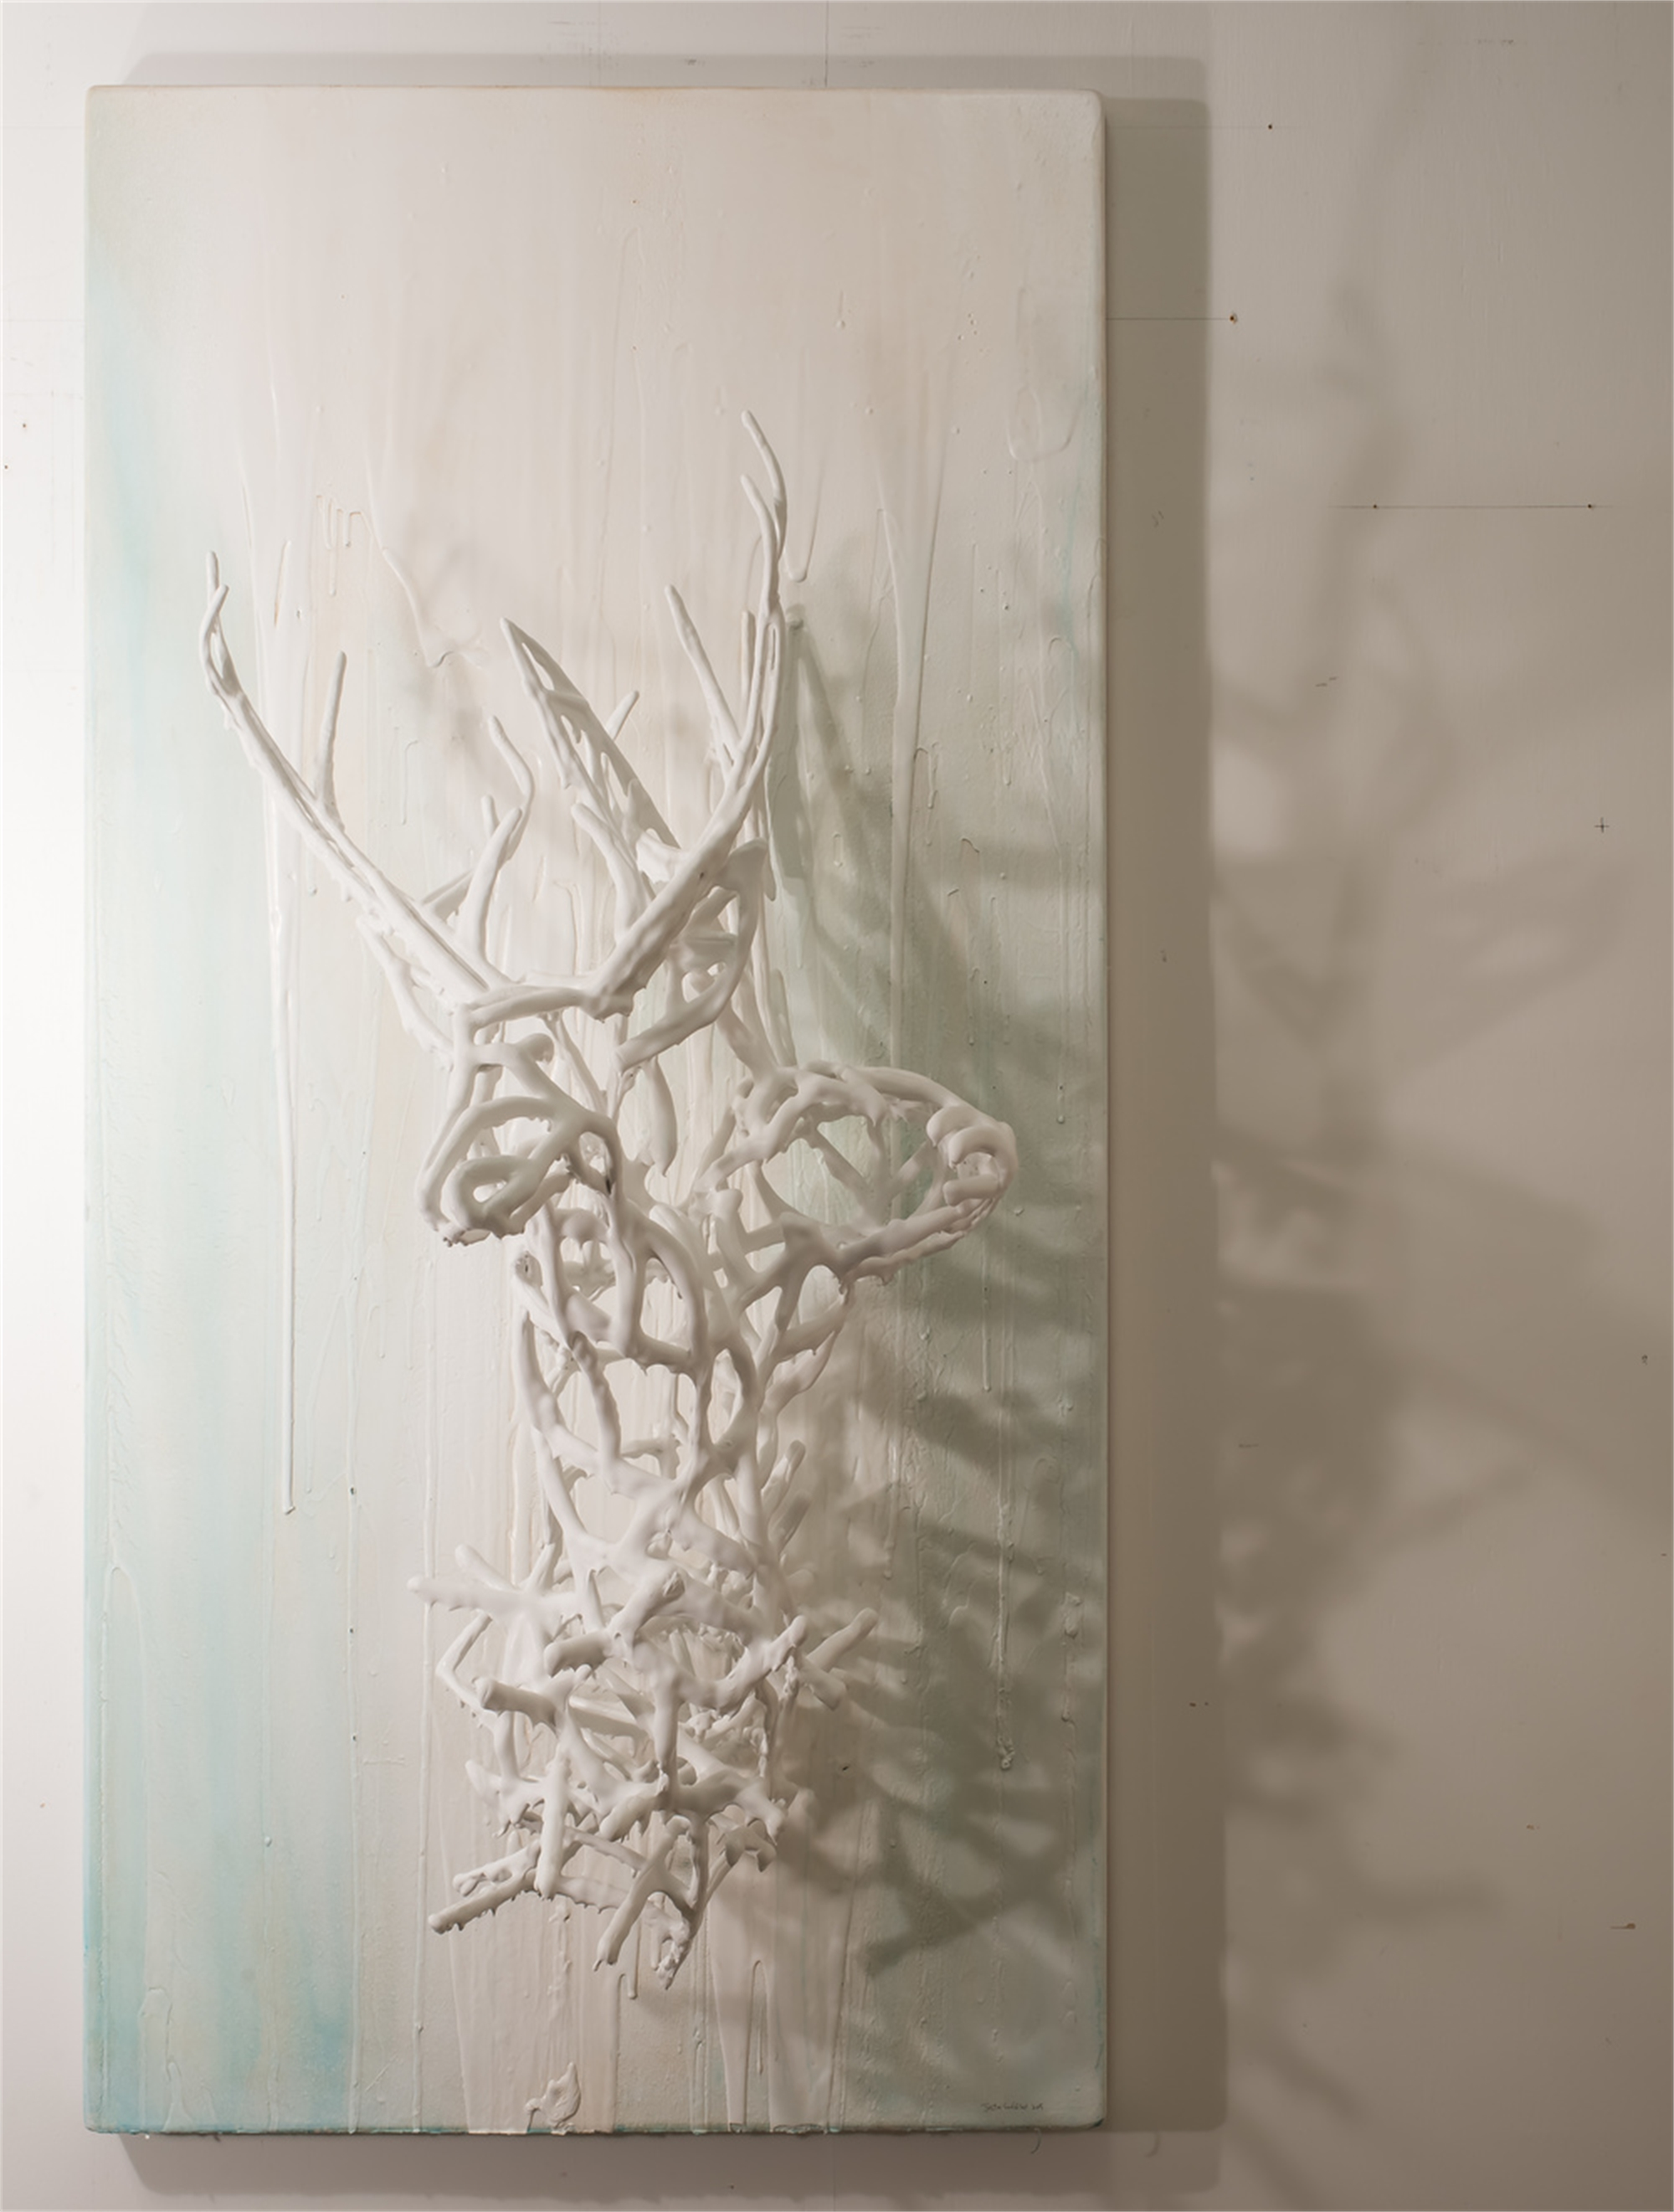 STAG-RABBIT by JUSTIN GAFFREY